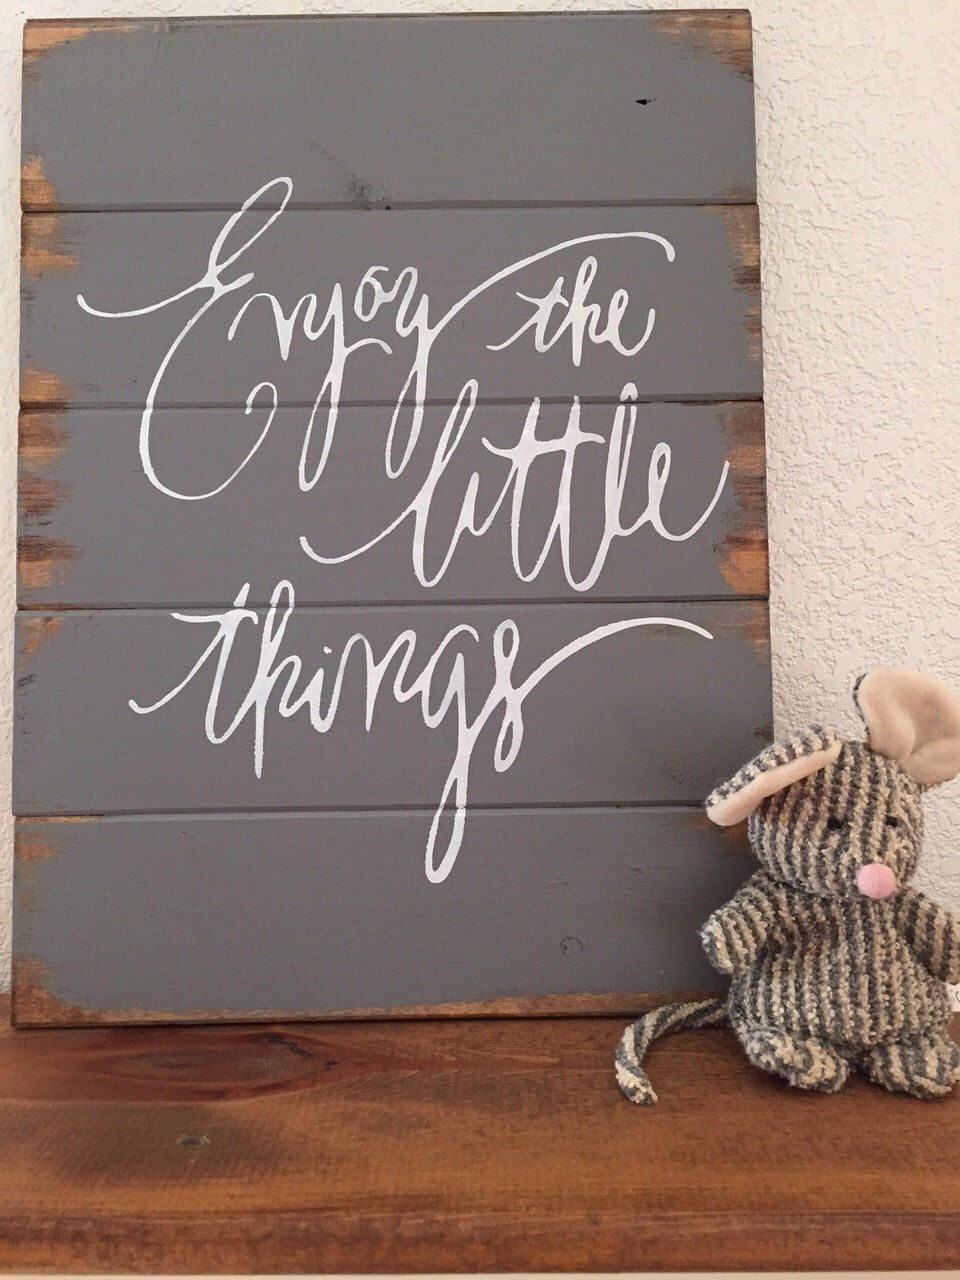 Rustic Pallet Art Inspirational Enjoy the Little Things Wooden Wall Hanging 9X12 Decorative Plaque